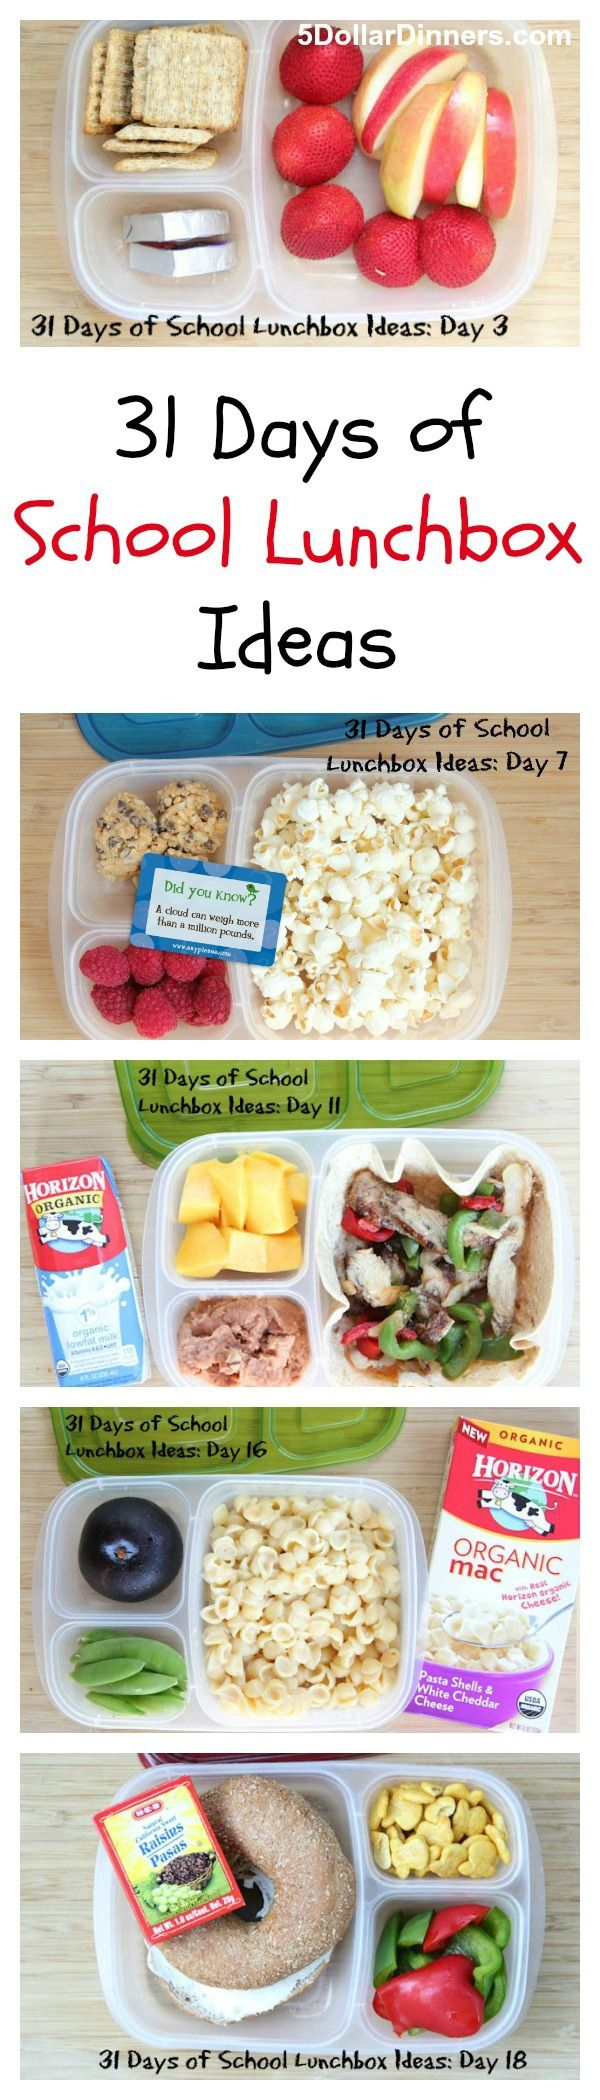 best ideas about great babysitting ideas frugal get inspired delicious and innovative ideas to pack in your child s lunches this school year